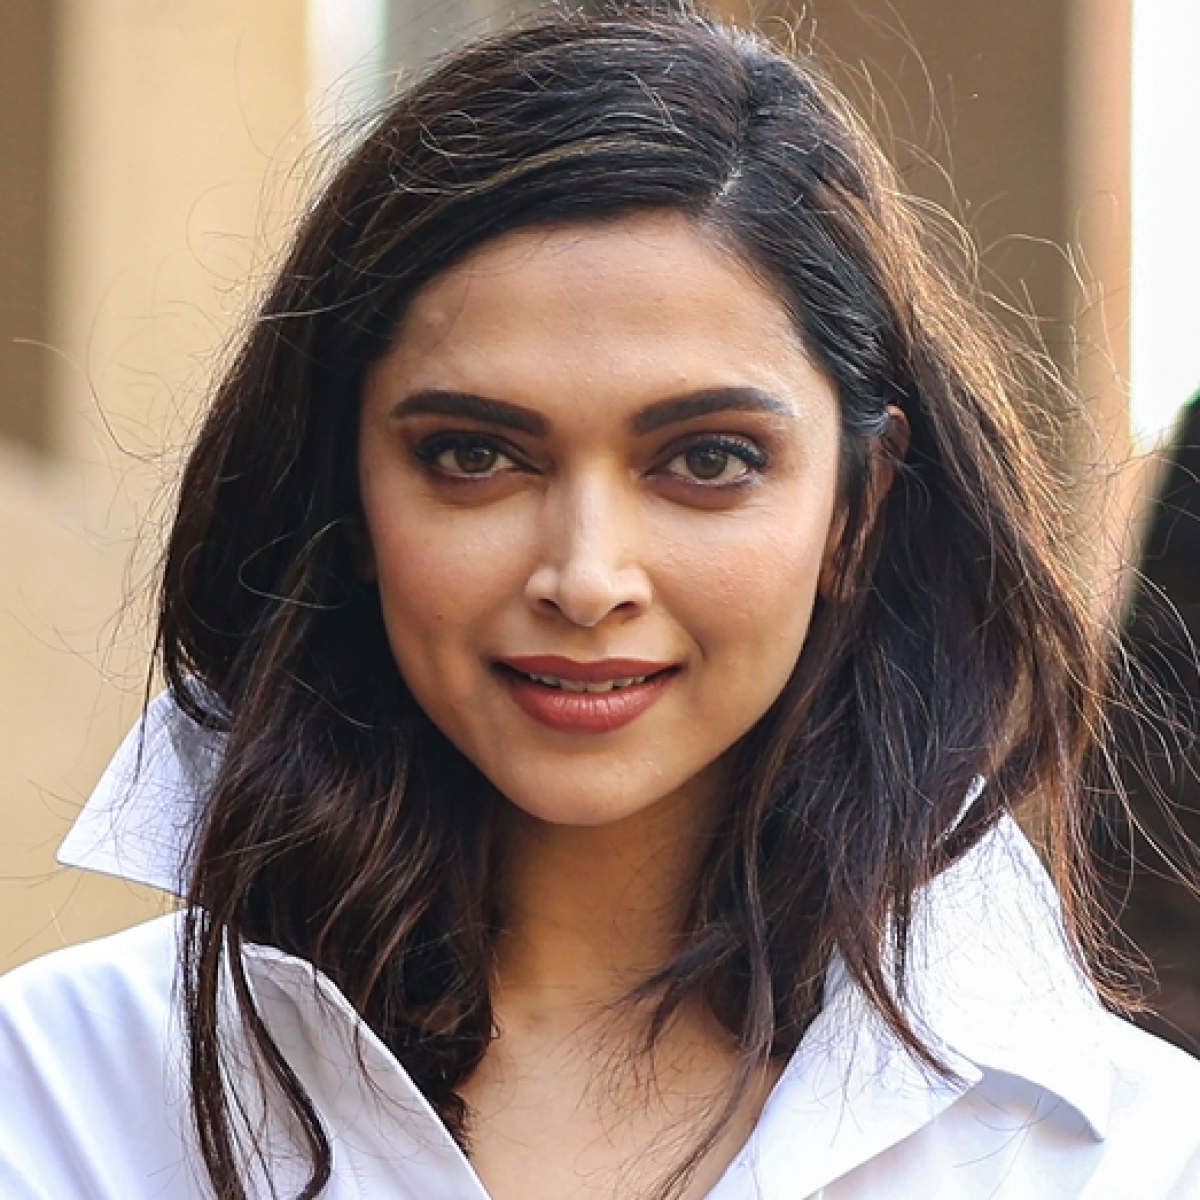 You cannot 'snap out' of depression: Deepika Padukone shares another mental health message